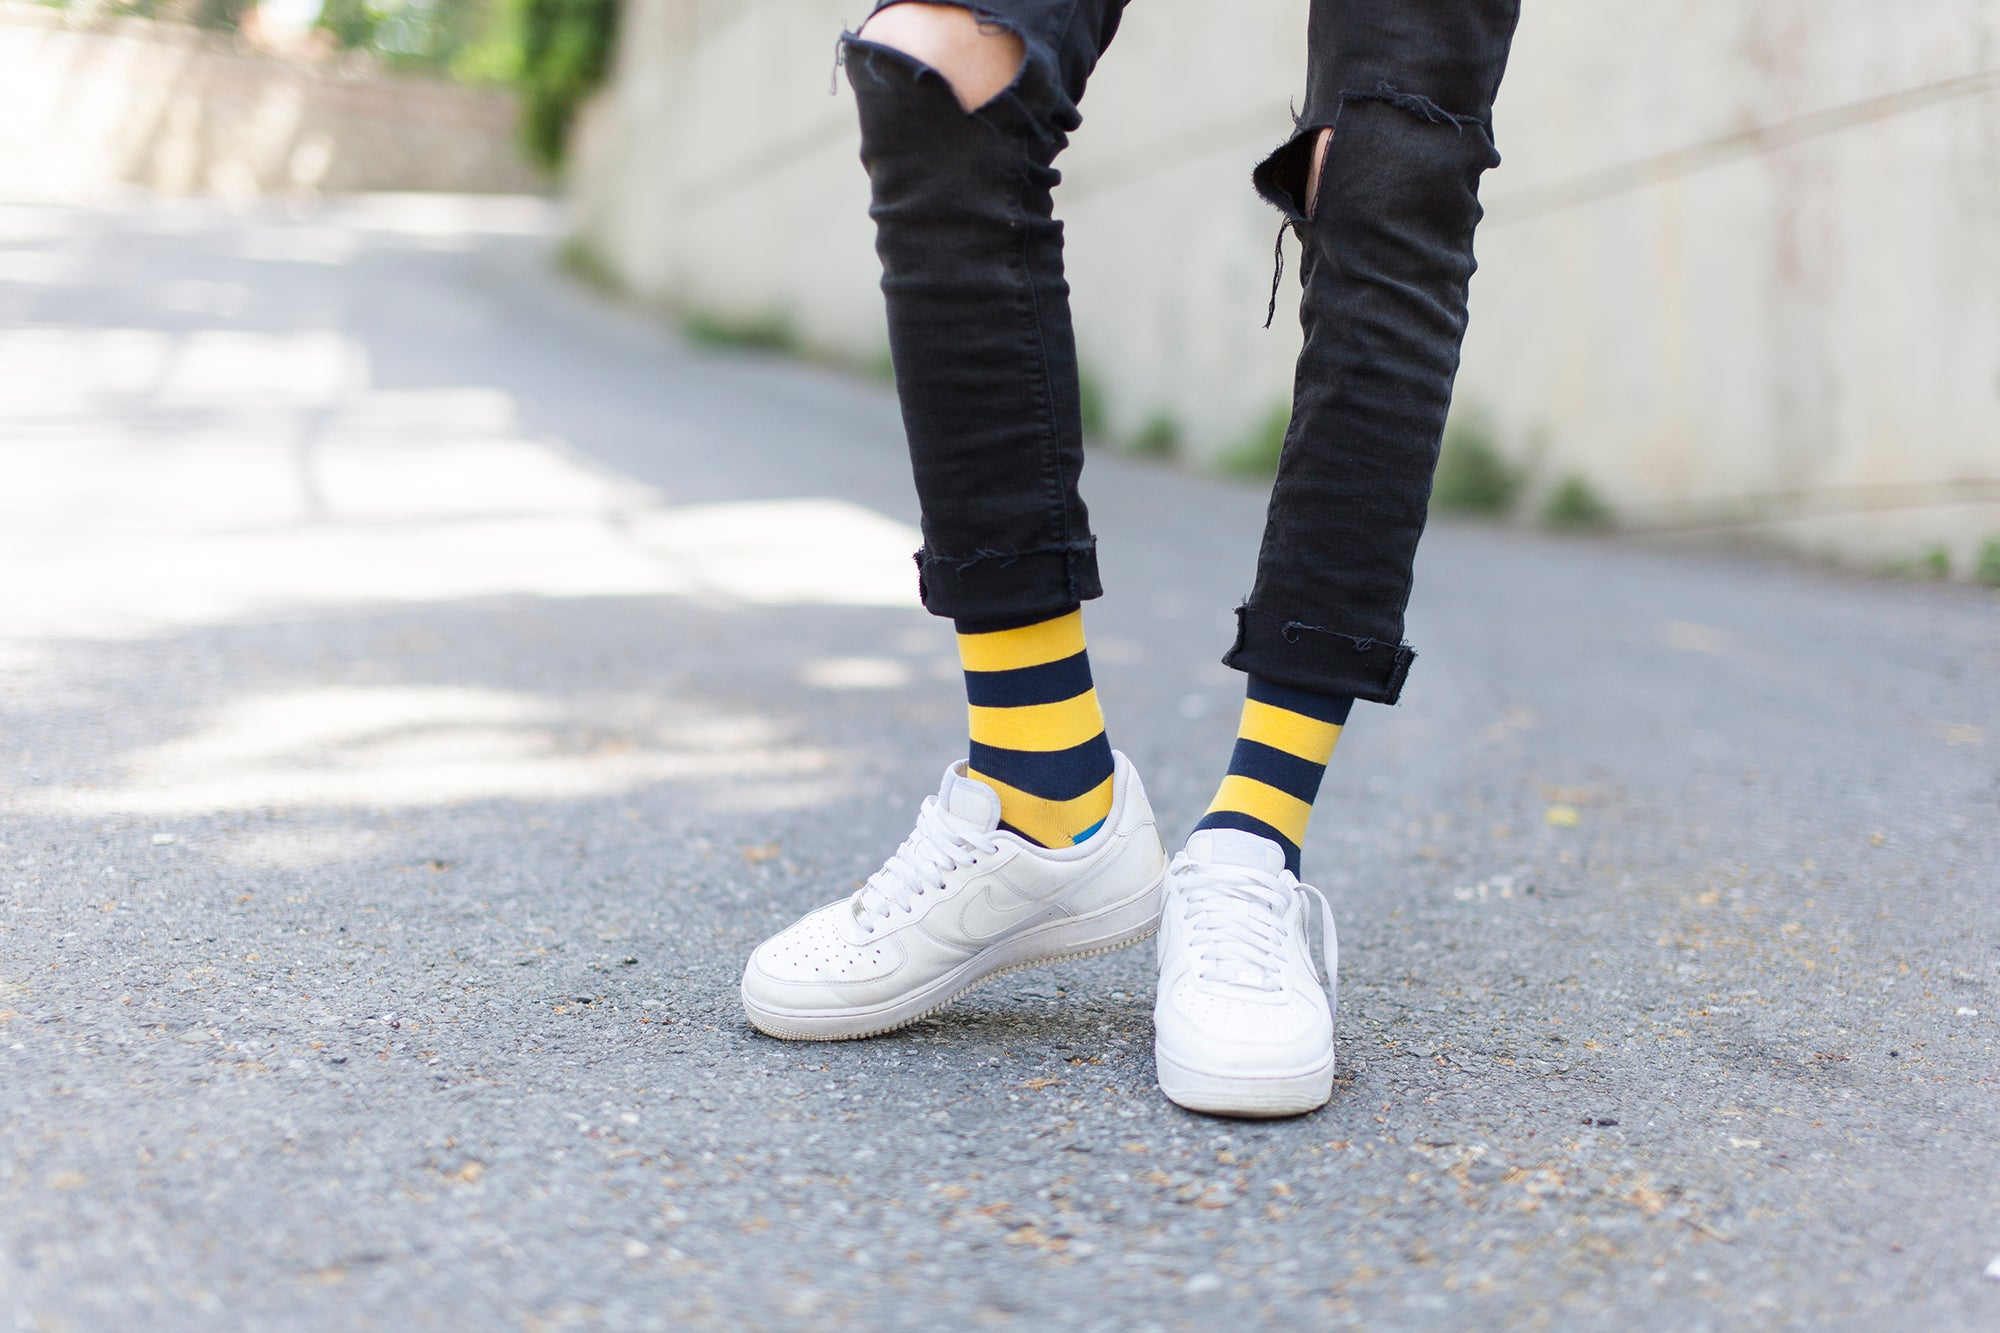 Men's Trendy Stripes Socks